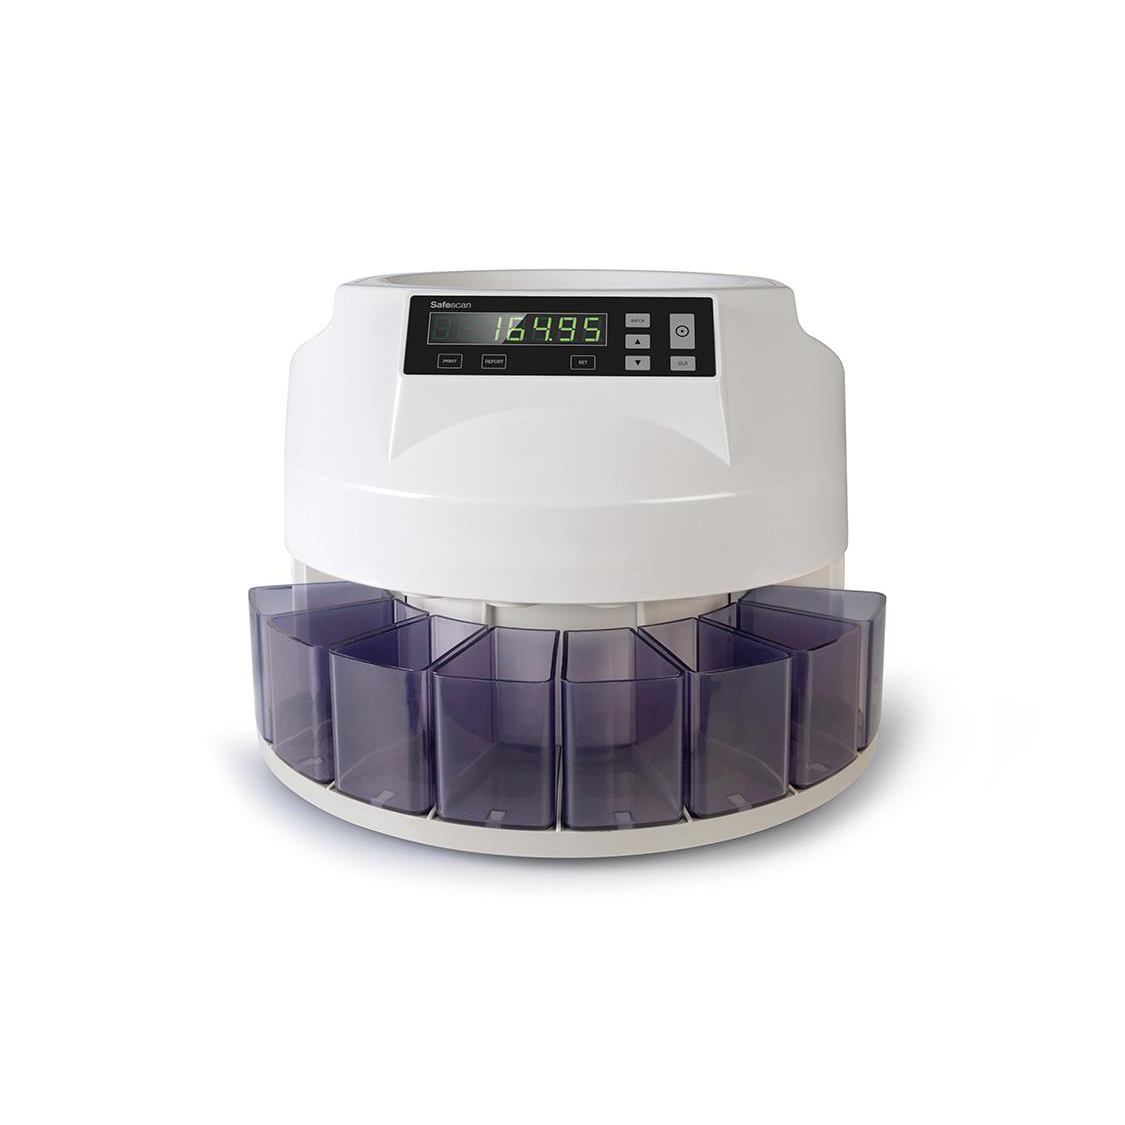 Safescan 1250 EUR Coin Counter and Sorter for Euro W330xL335xH266mm Grey Ref 113-0549